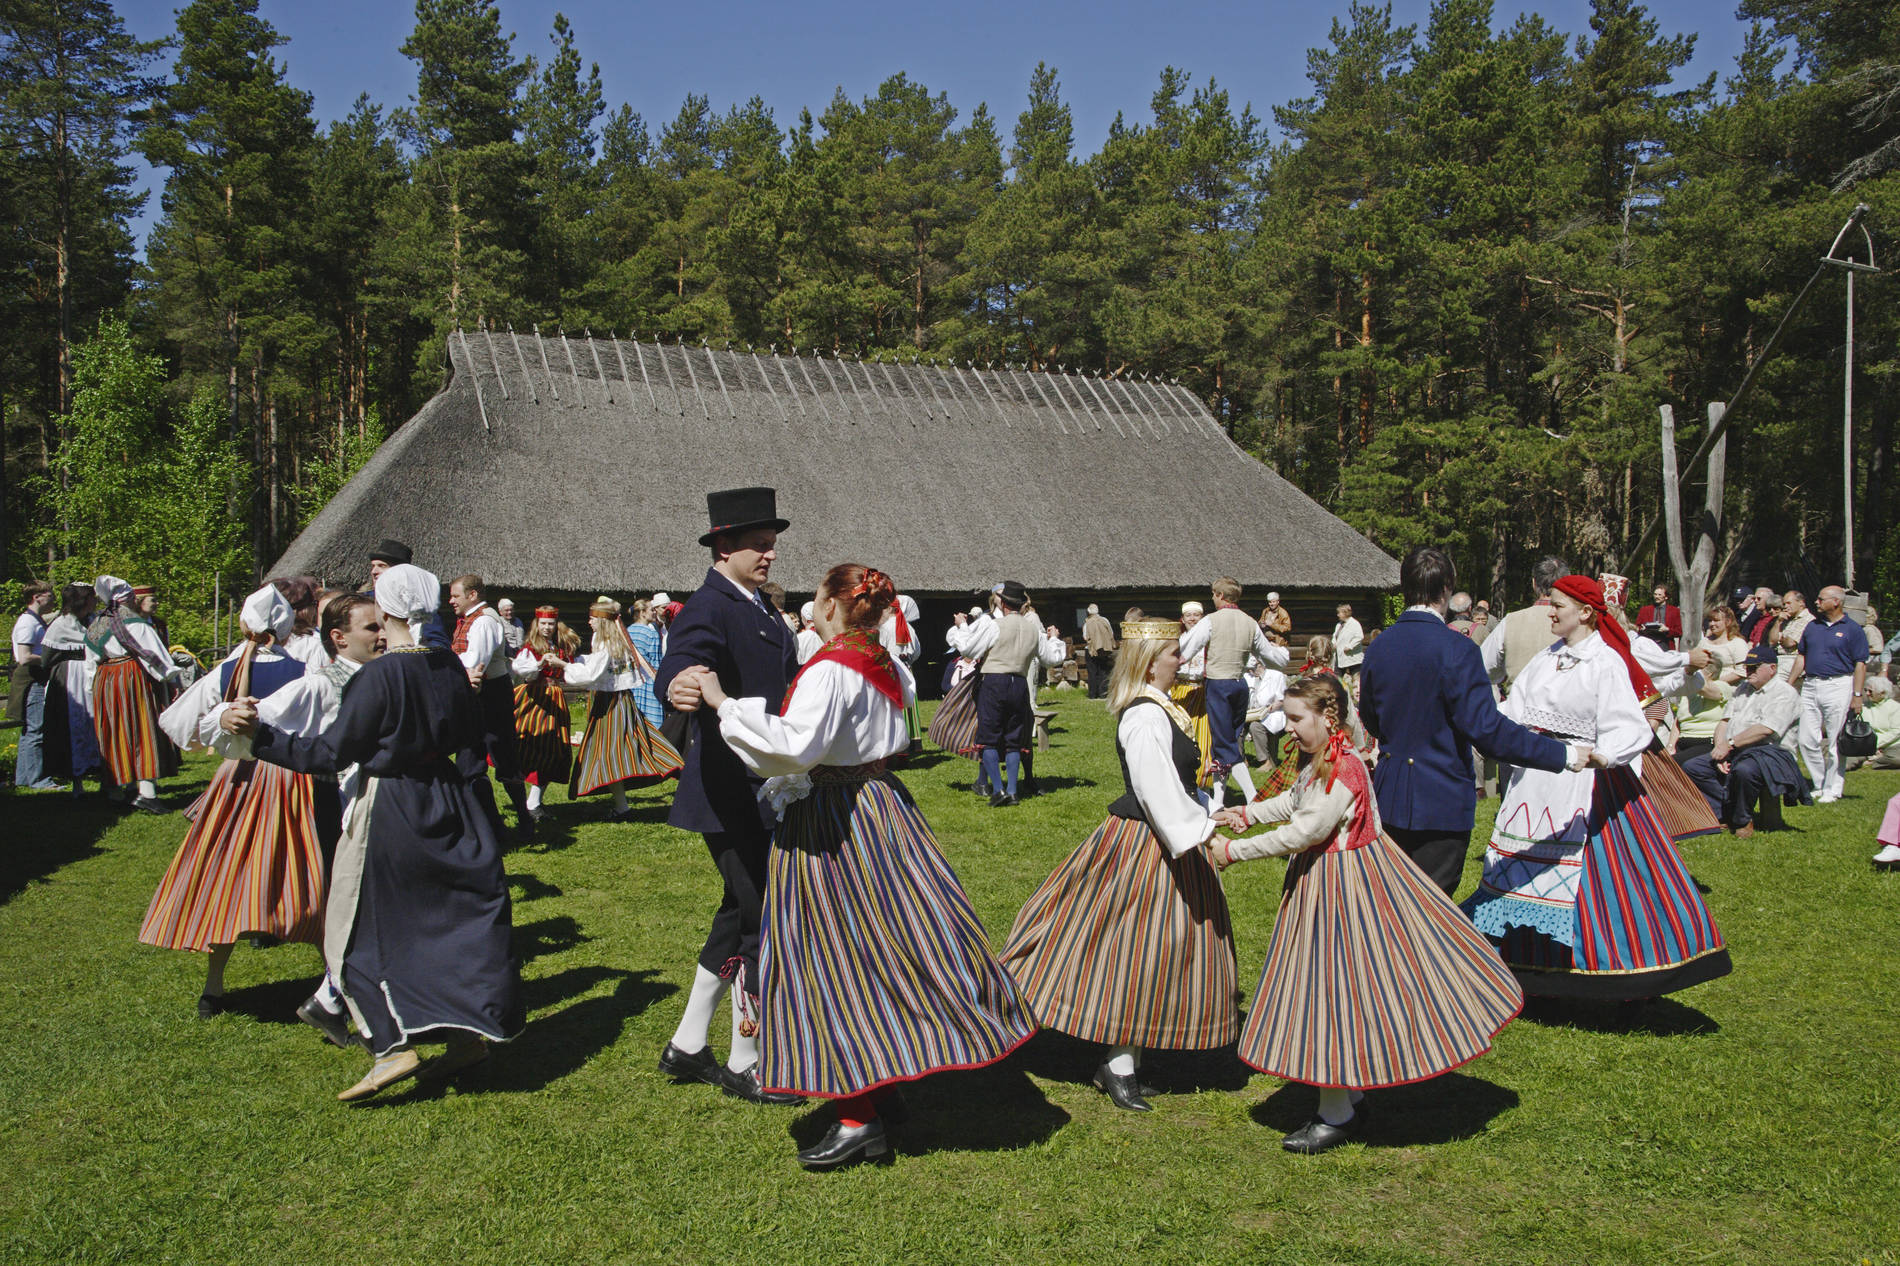 Folk dancers performing in front of an old tavern in the Open Air museum in the Rocca al Mare area Tallinn, Estonia. Photo by: Toomas Tuul